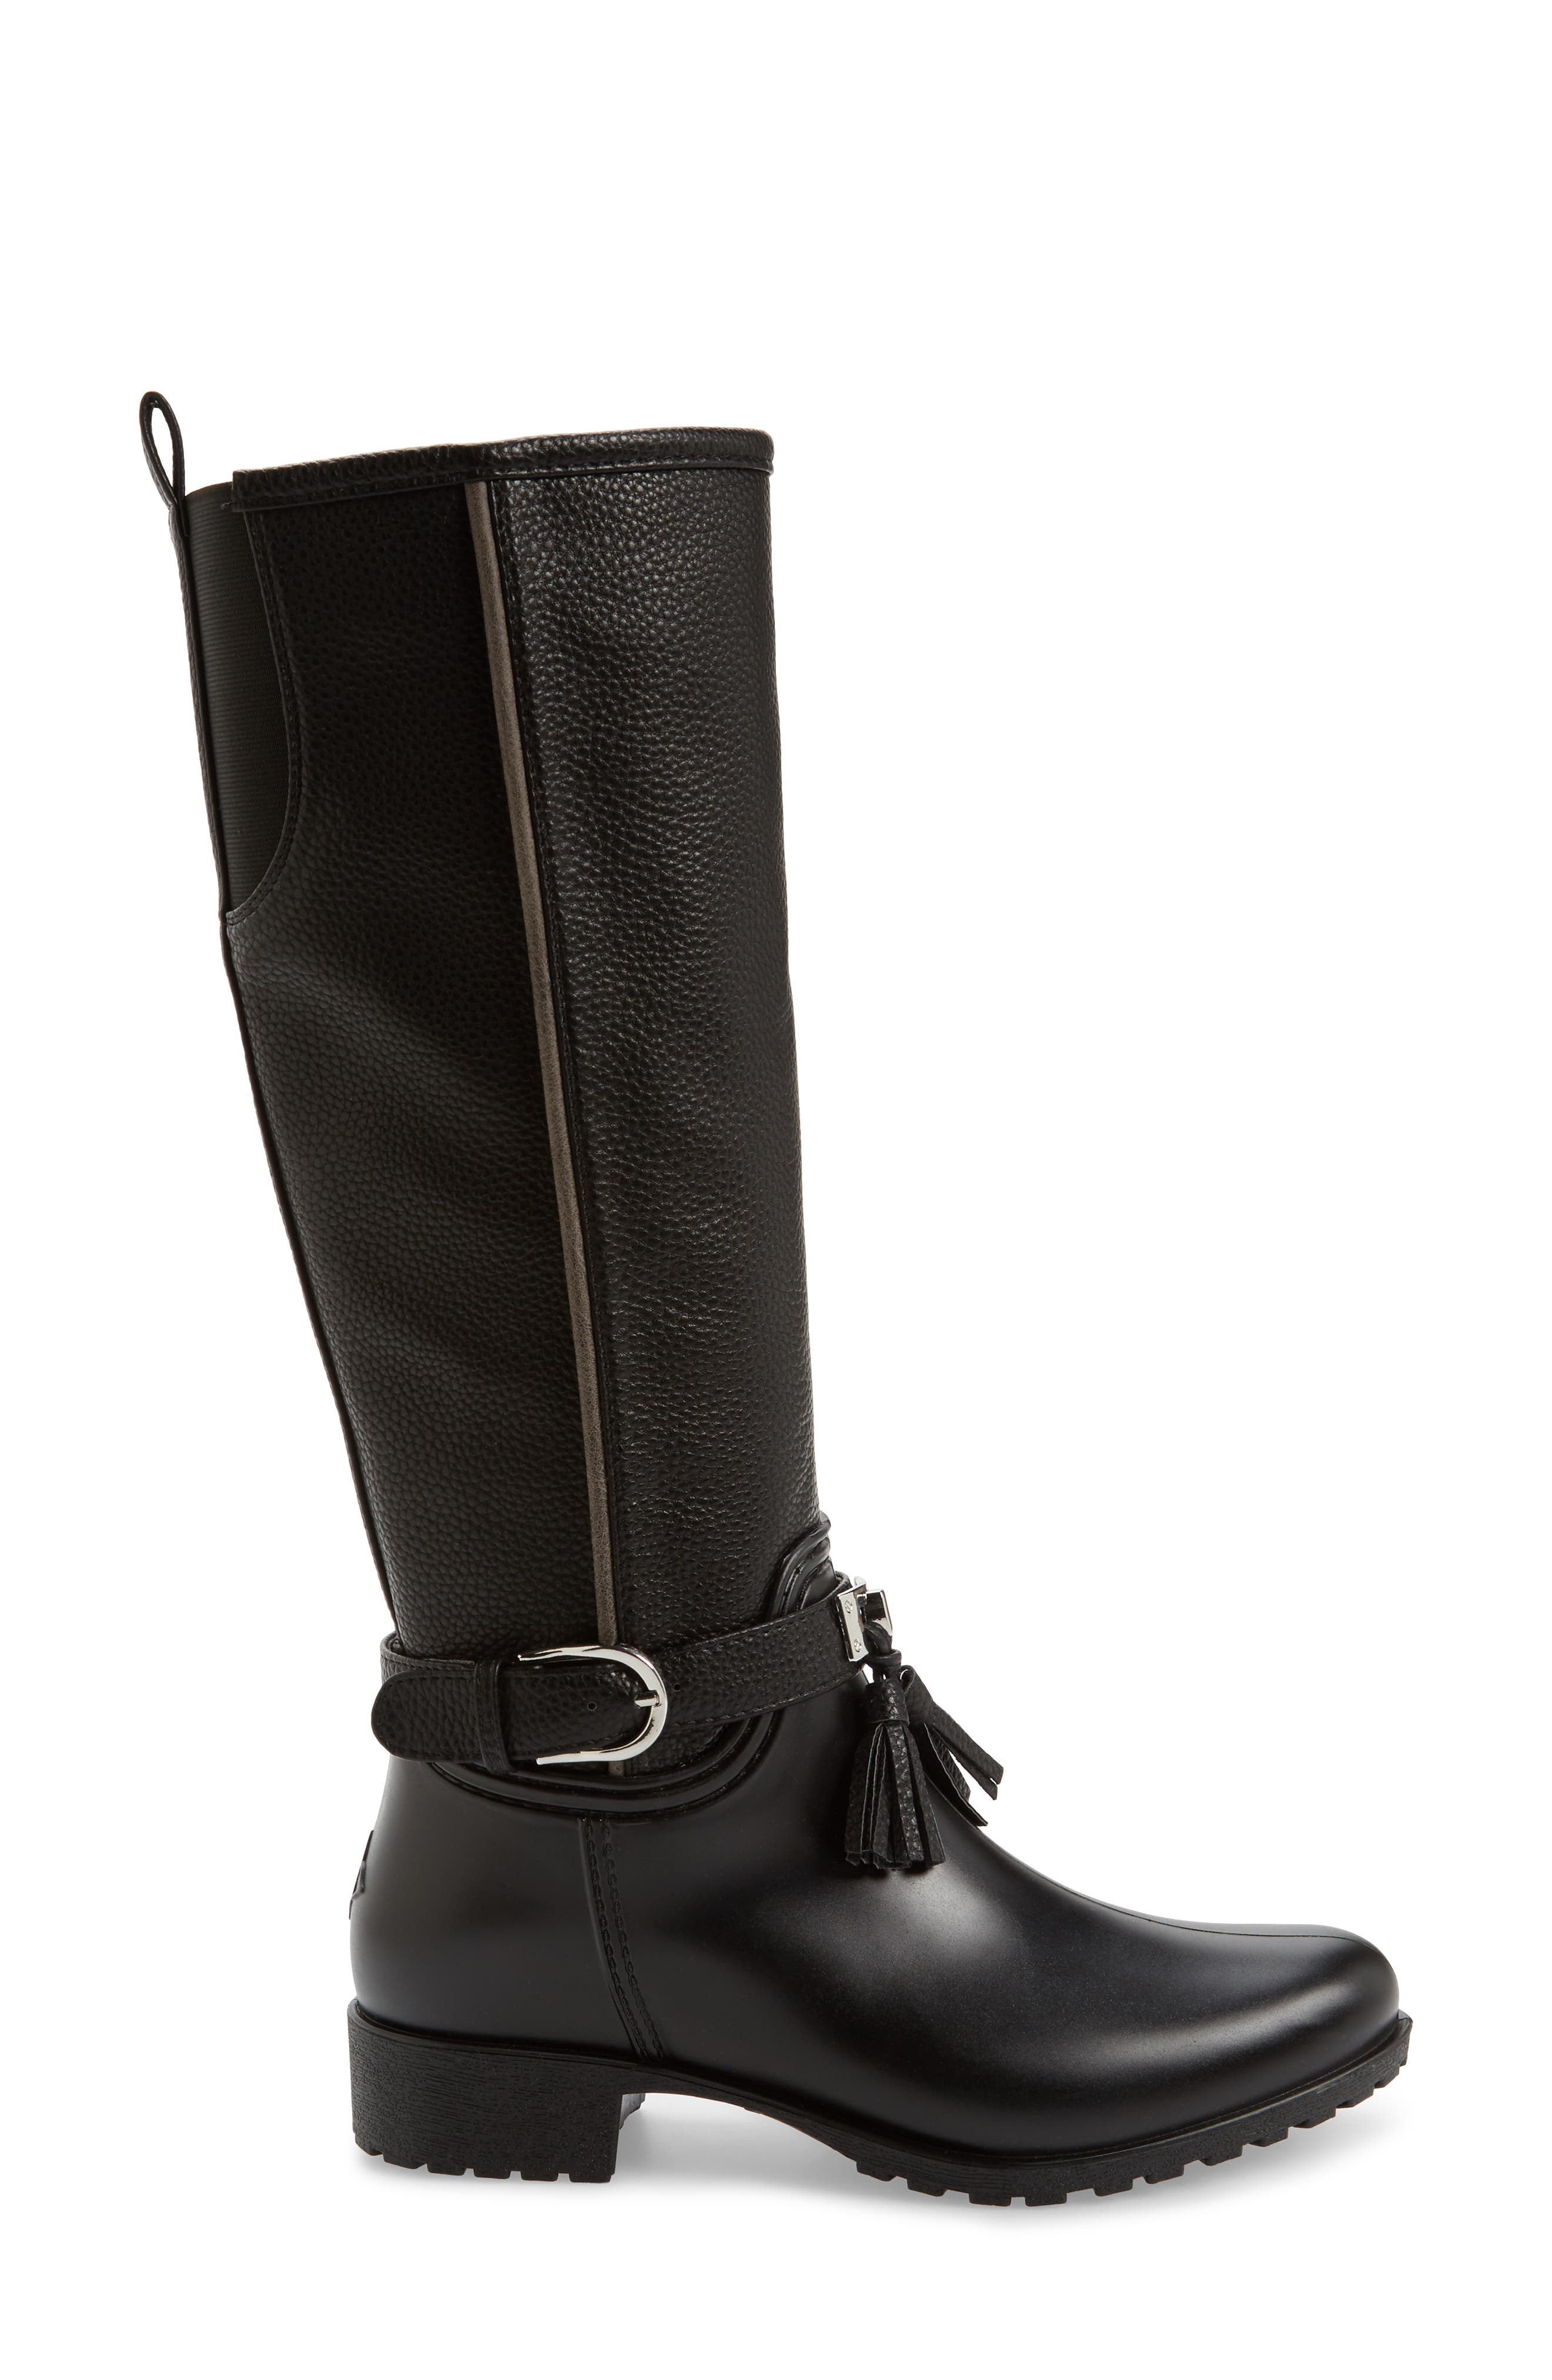 DÄV, Inverness Faux Shearling Lined Water Resistant Boot, Alternate thumbnail 3, color, BLACK